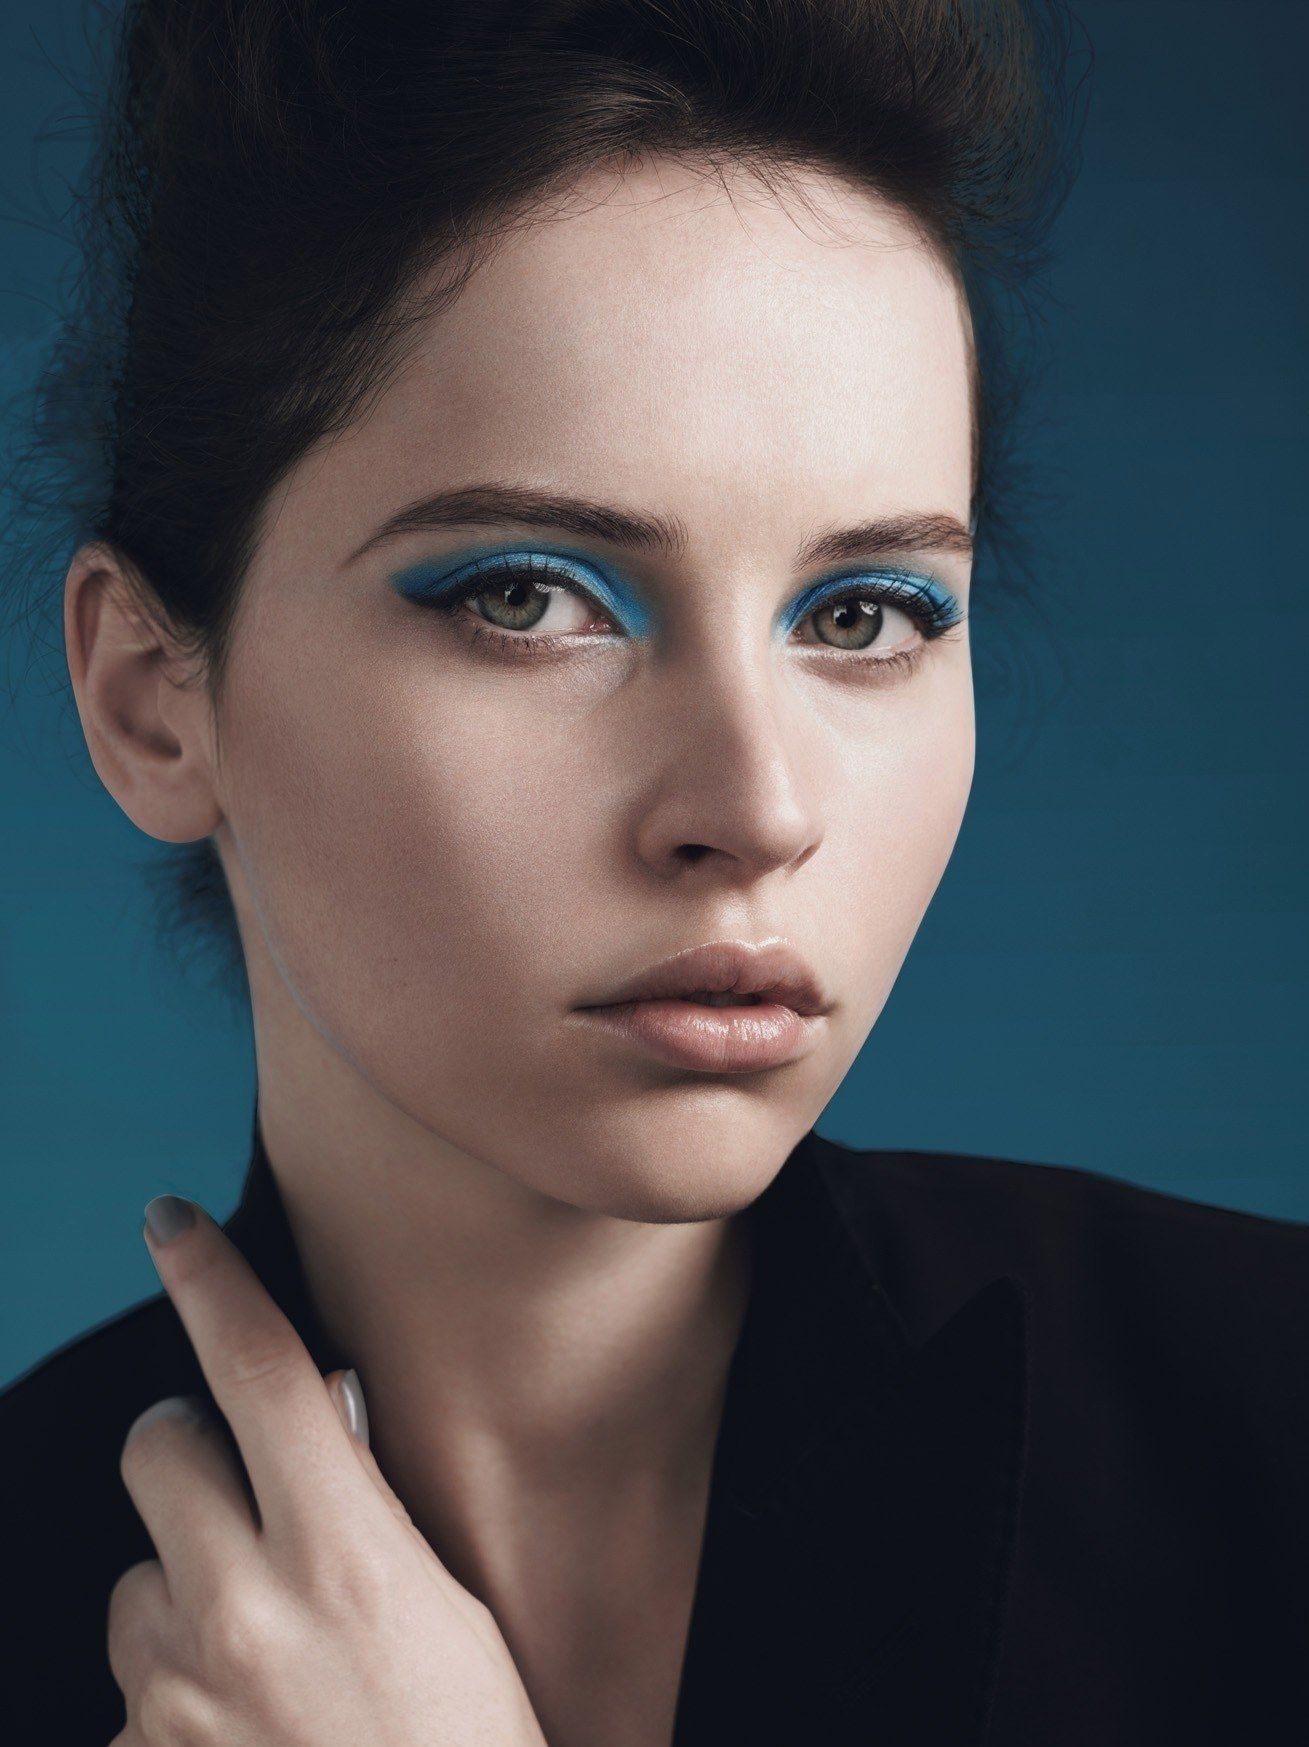 Actress Felicity Jones, the new face of Dolce & Gabbana